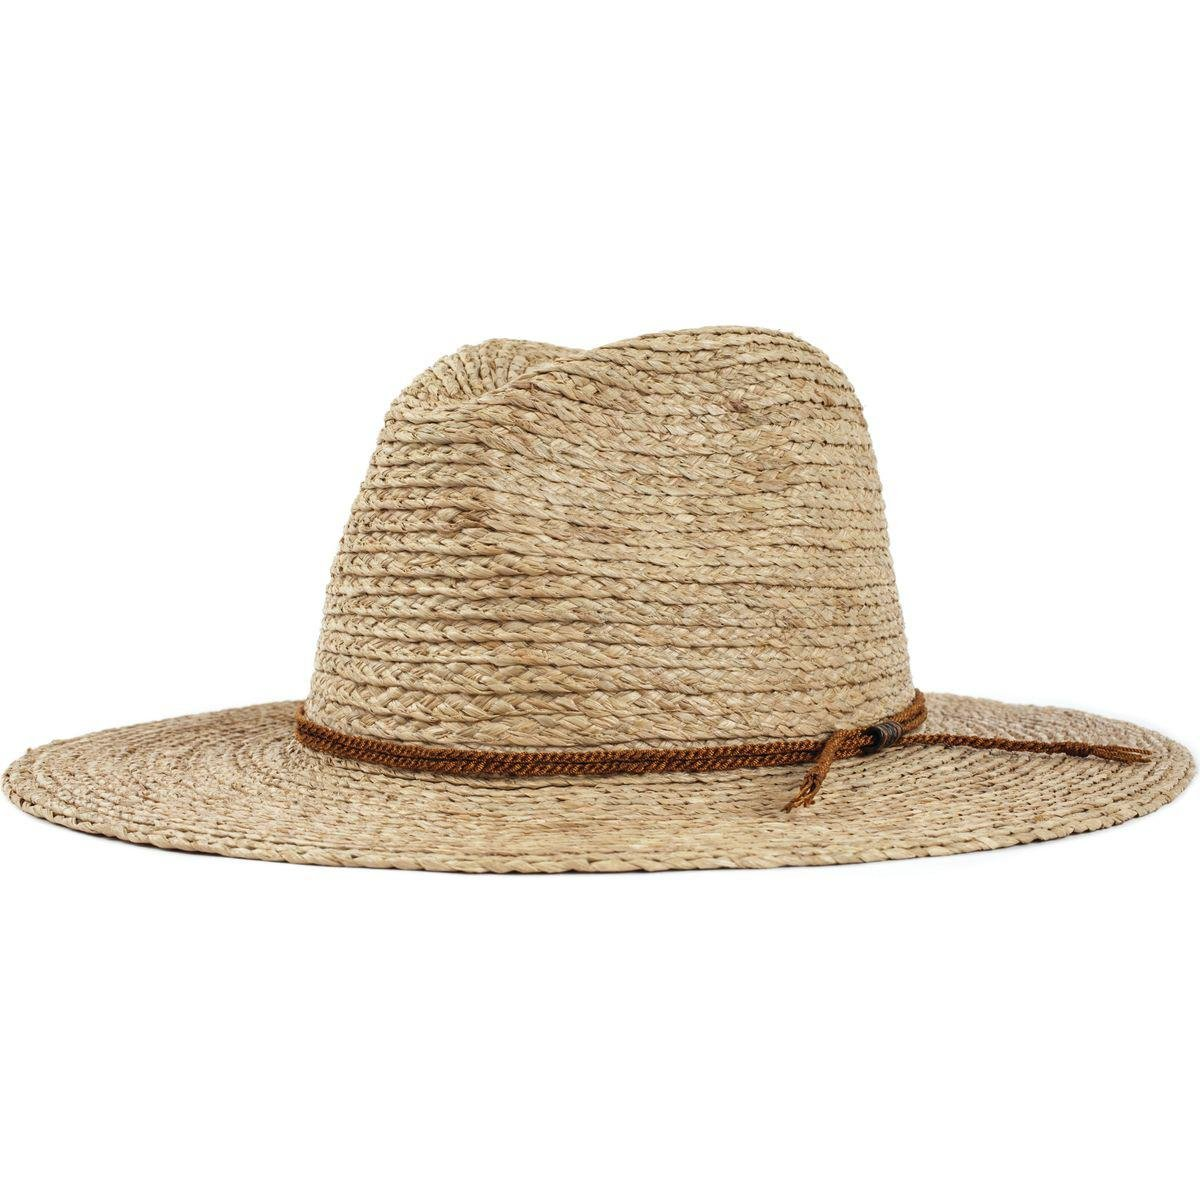 33df6a0adb12a Lyst - Brixton Sandoz Hat in Natural for Men